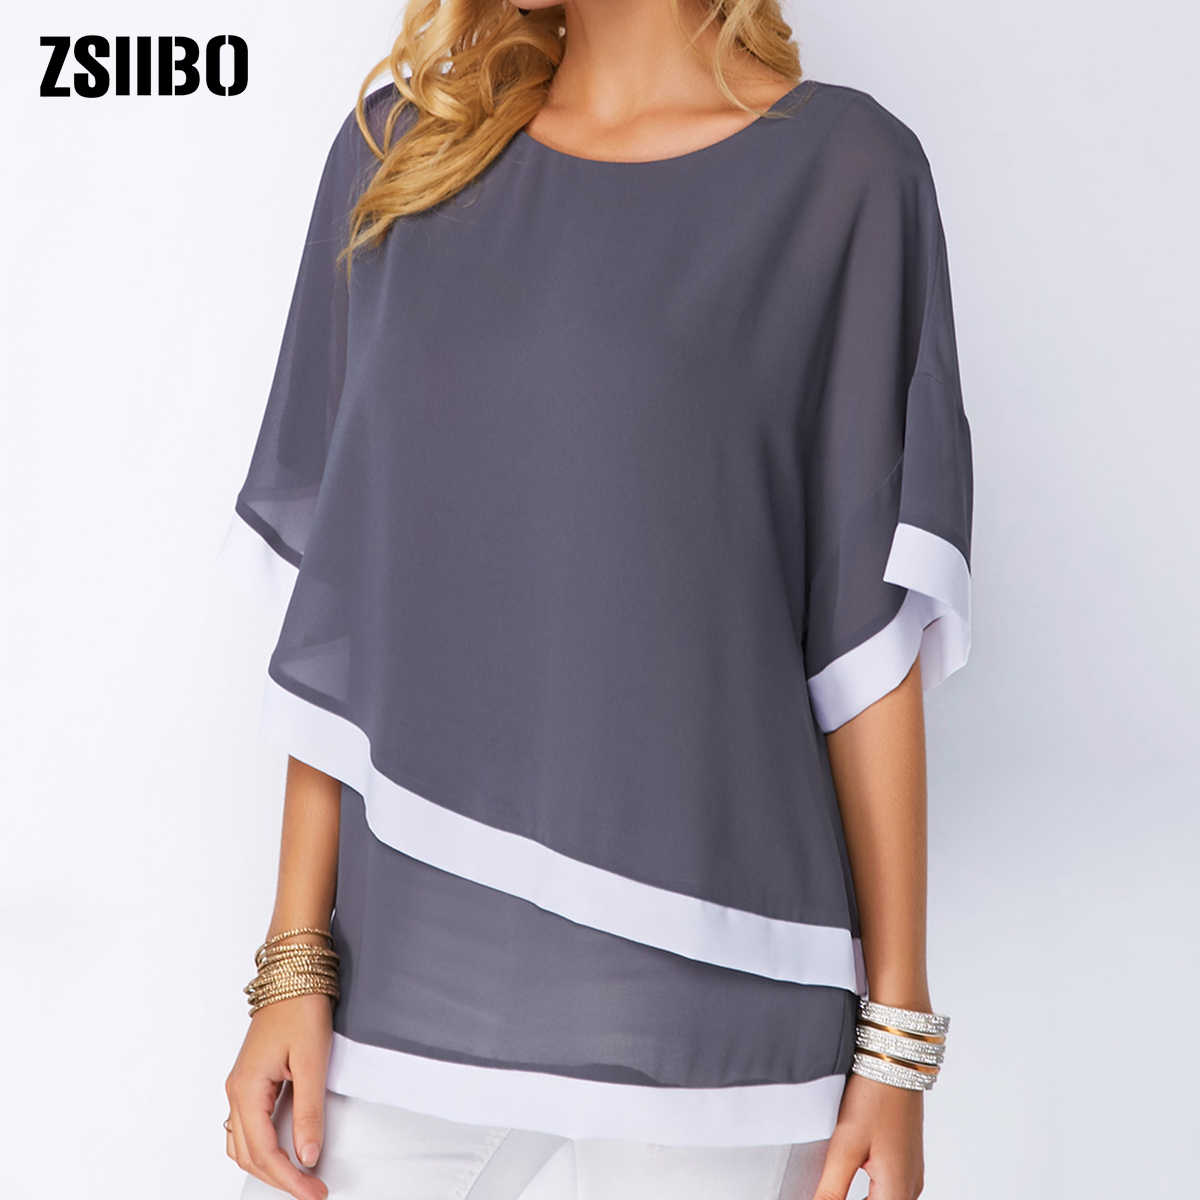 Plus Size Blouses Voor Vrouwen 4xl 5xl Patchwork Dubbele Laag Tops Casual Batwing Tuniek 2019 Herfst Grote Maat Chiffon Shirts